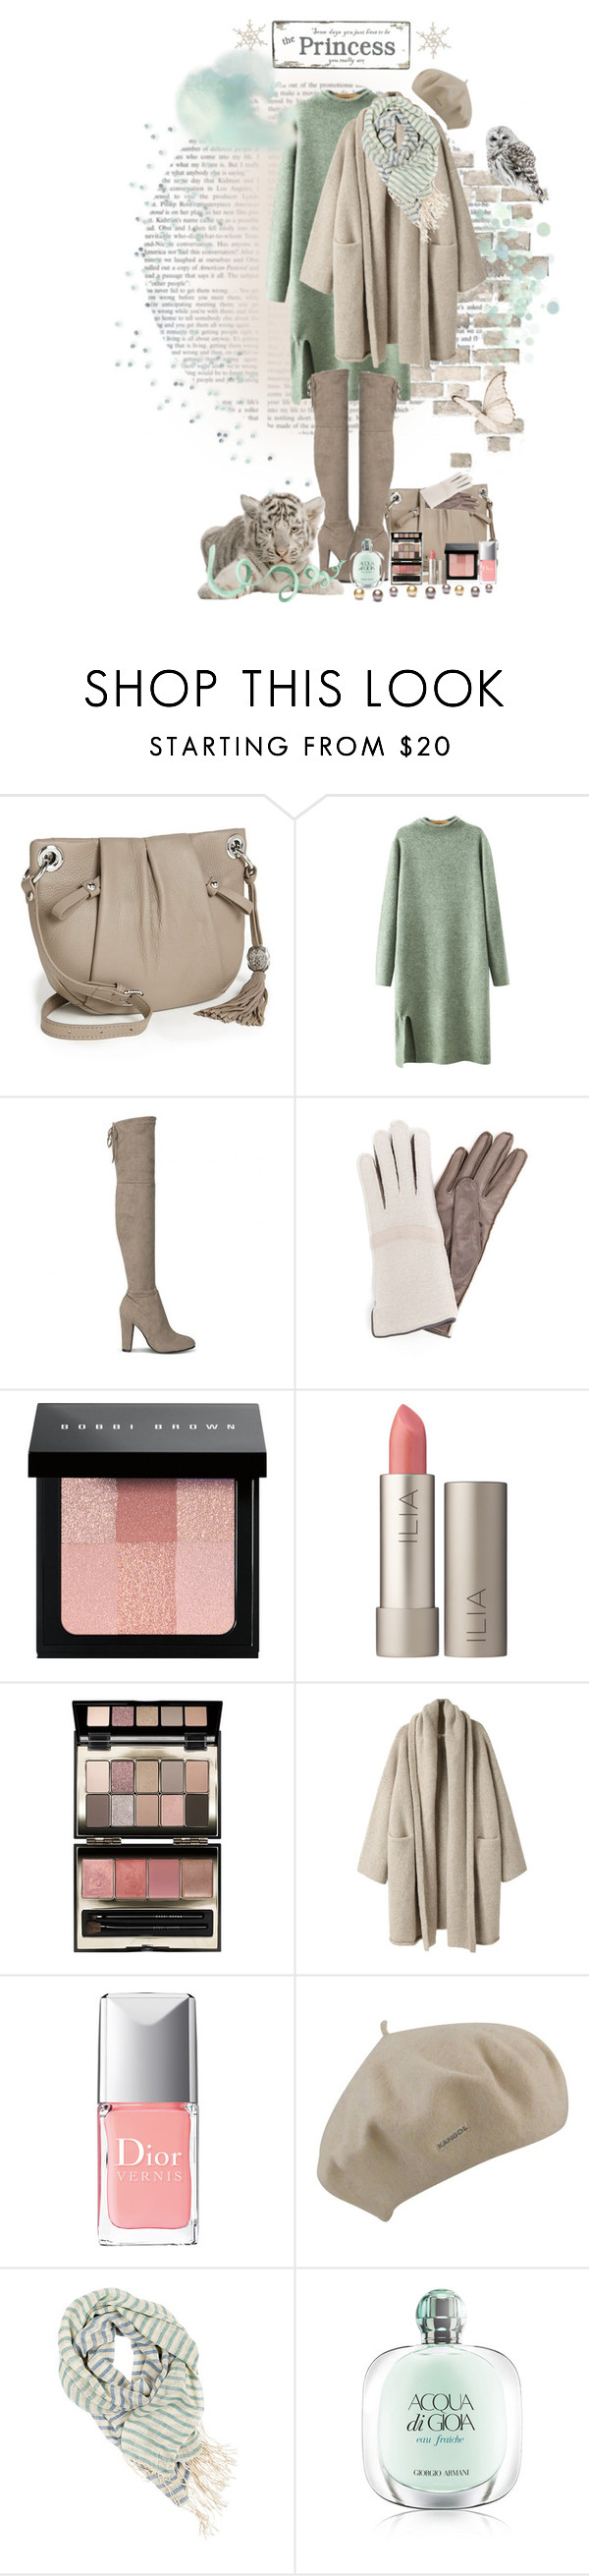 """""""winter 5 2016"""" by ntina36 ❤ liked on Polyvore featuring Vince Camuto, Chicnova Fashion, Frauenschuh, Bobbi Brown Cosmetics, Ilia, Lauren Manoogian, Christian Dior, Giorgio Armani, women's clothing and women"""